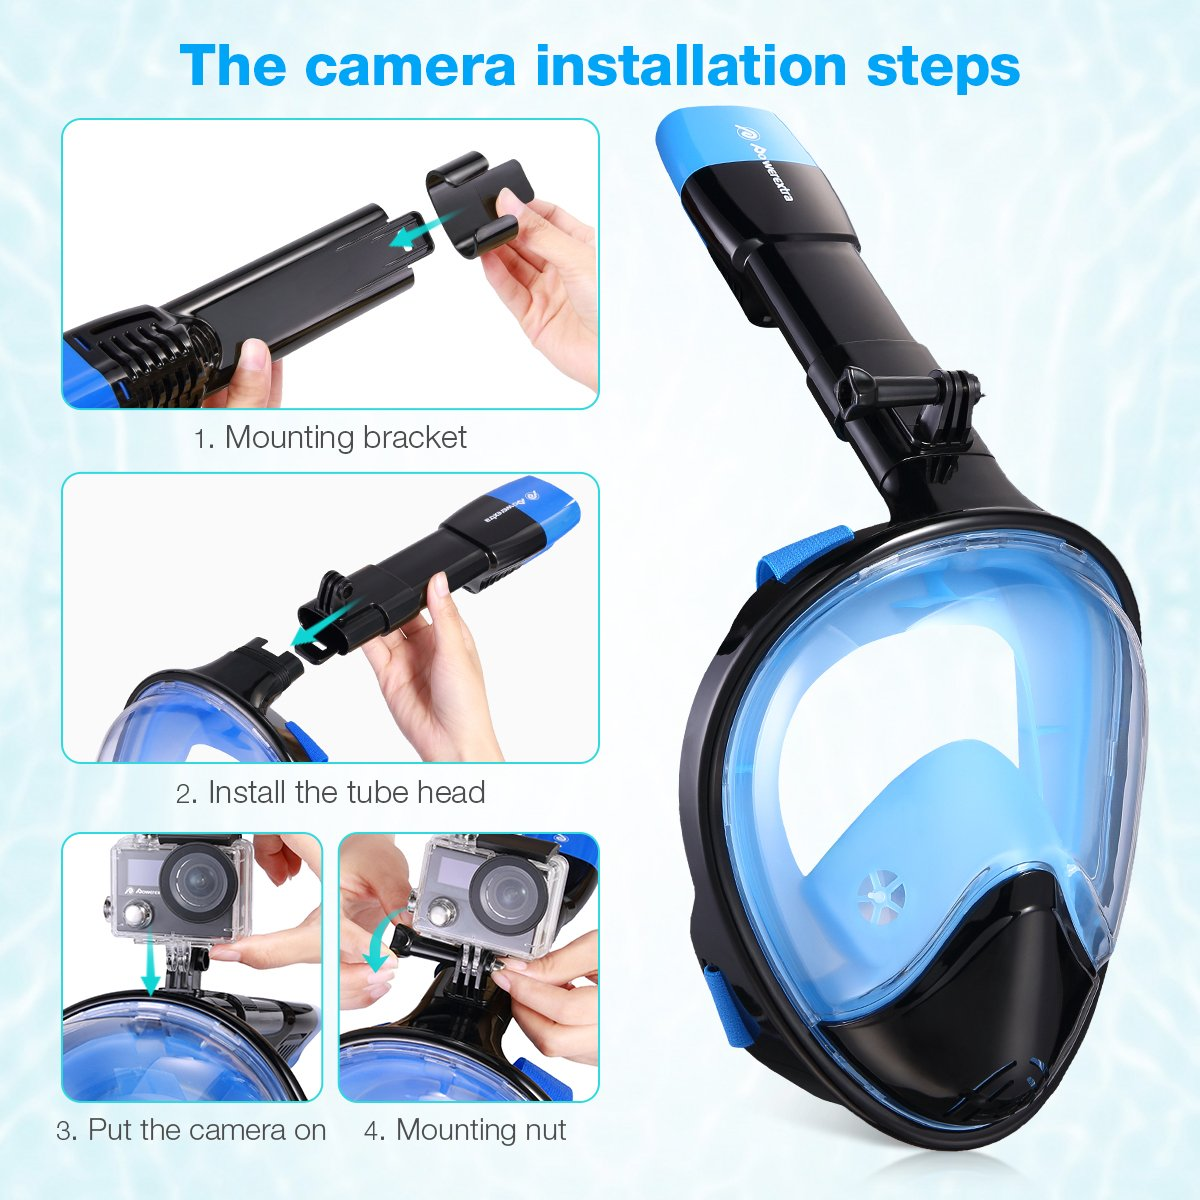 Powerextra Snorkel Mask 180° Panoramic View Anti-fog Anti-leak Design for Gopro and other Detachable Camera Mounts (Size: L/XL)